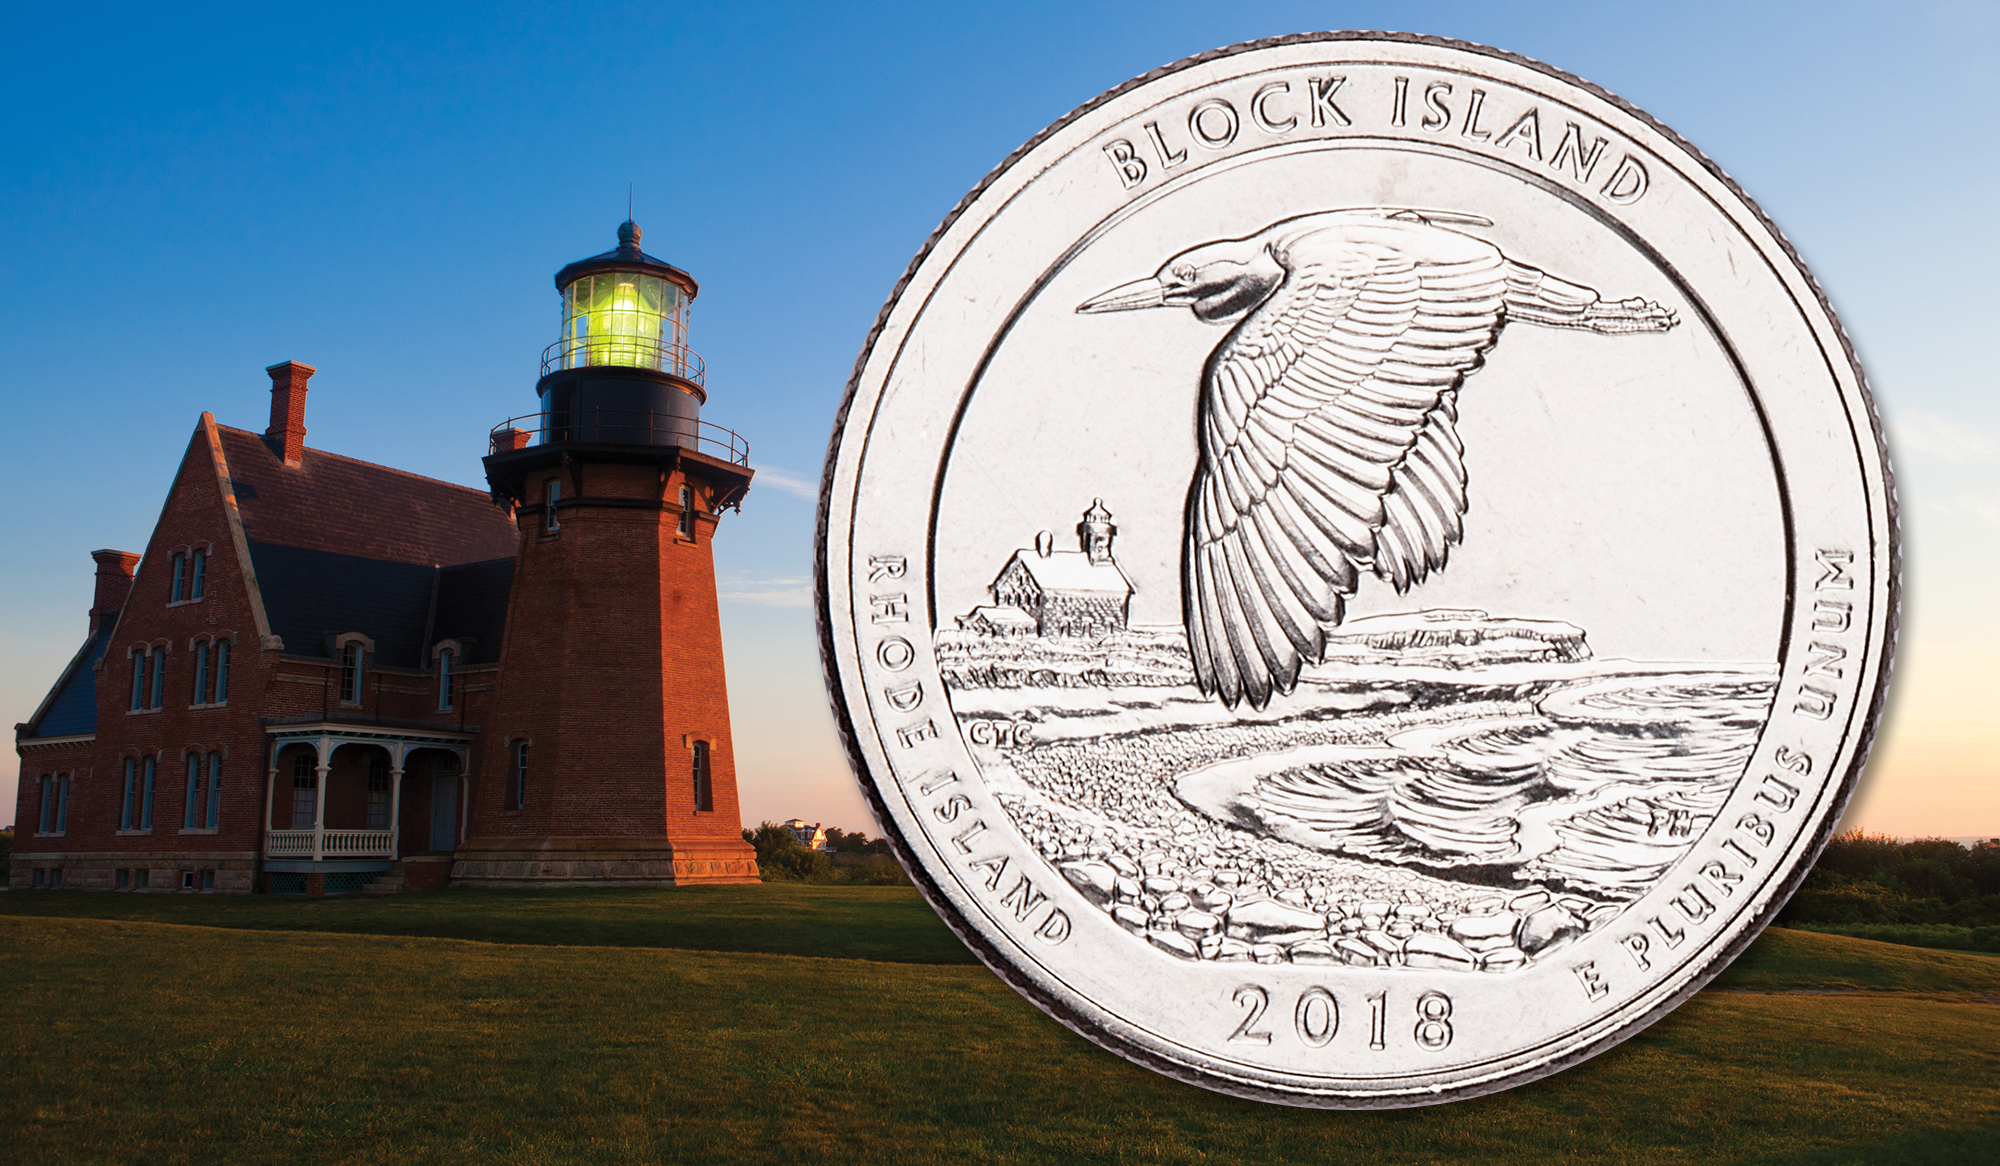 Block Island National Wildlife Refuge Quarter Released